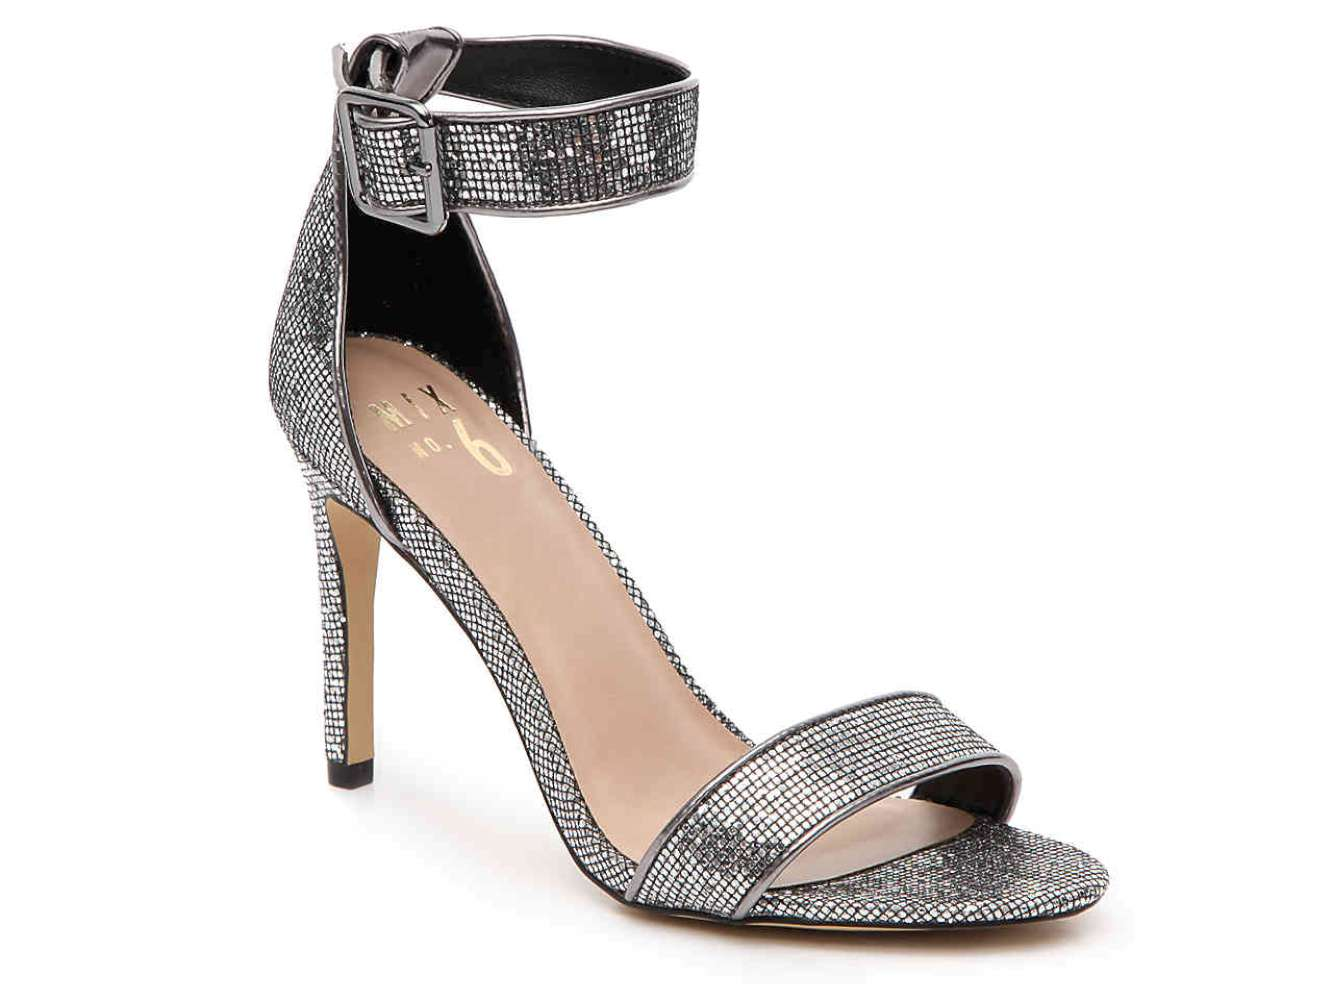 Mix No Toe 6 Damenschuhe Laela Open Toe No Special Occasion Ankle Strap Sandales ... a25df2